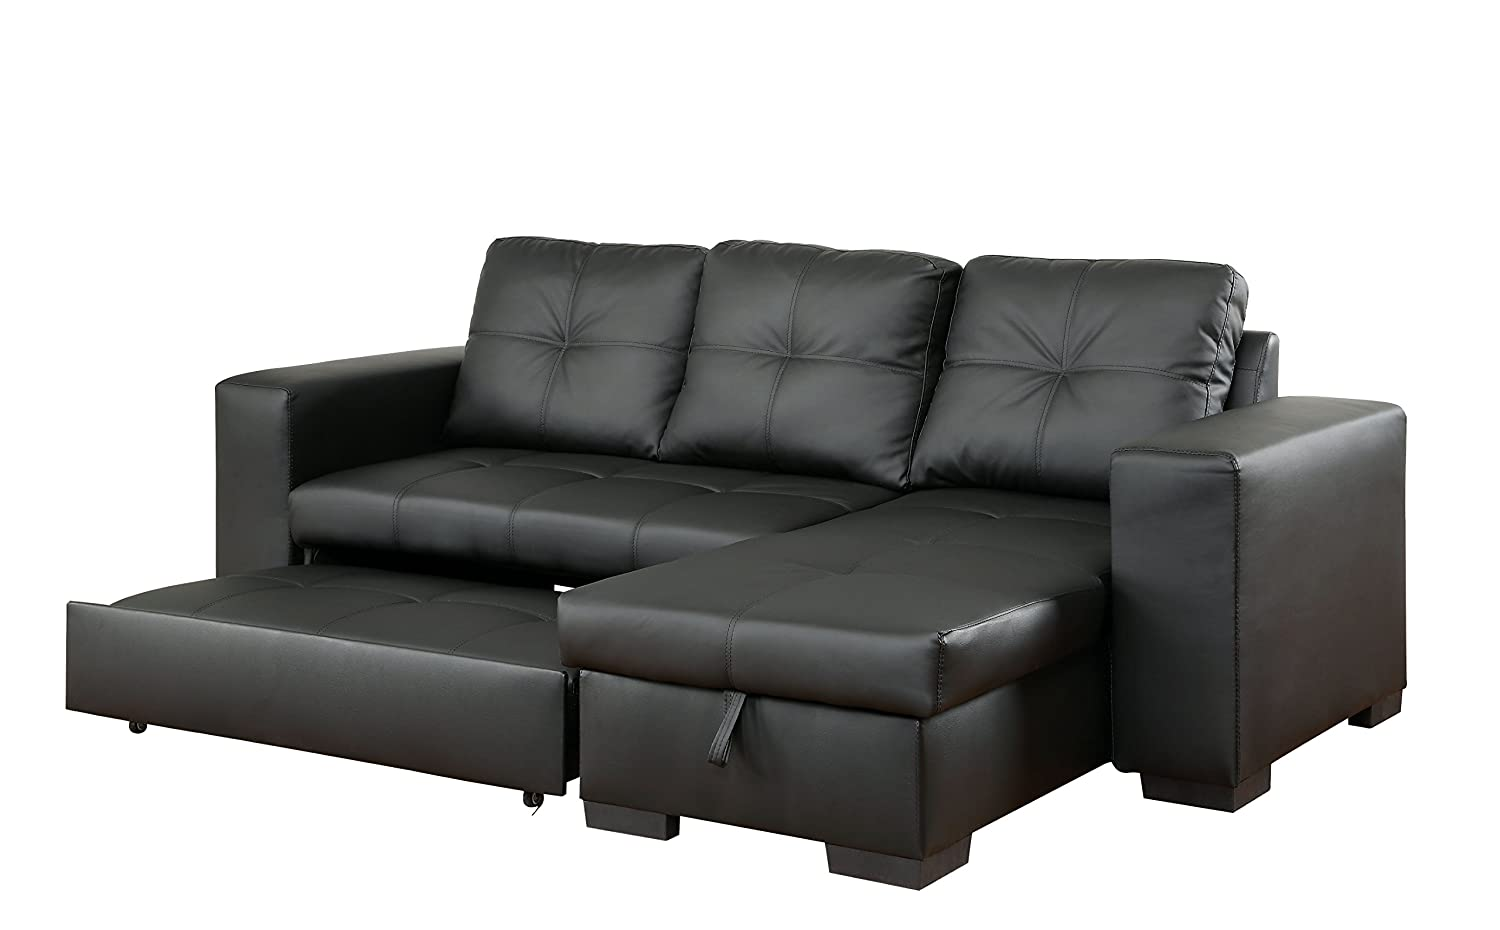 Furniture of America Charlton Contemporary Corner Sectional with Pull-Out Sleeper - Black